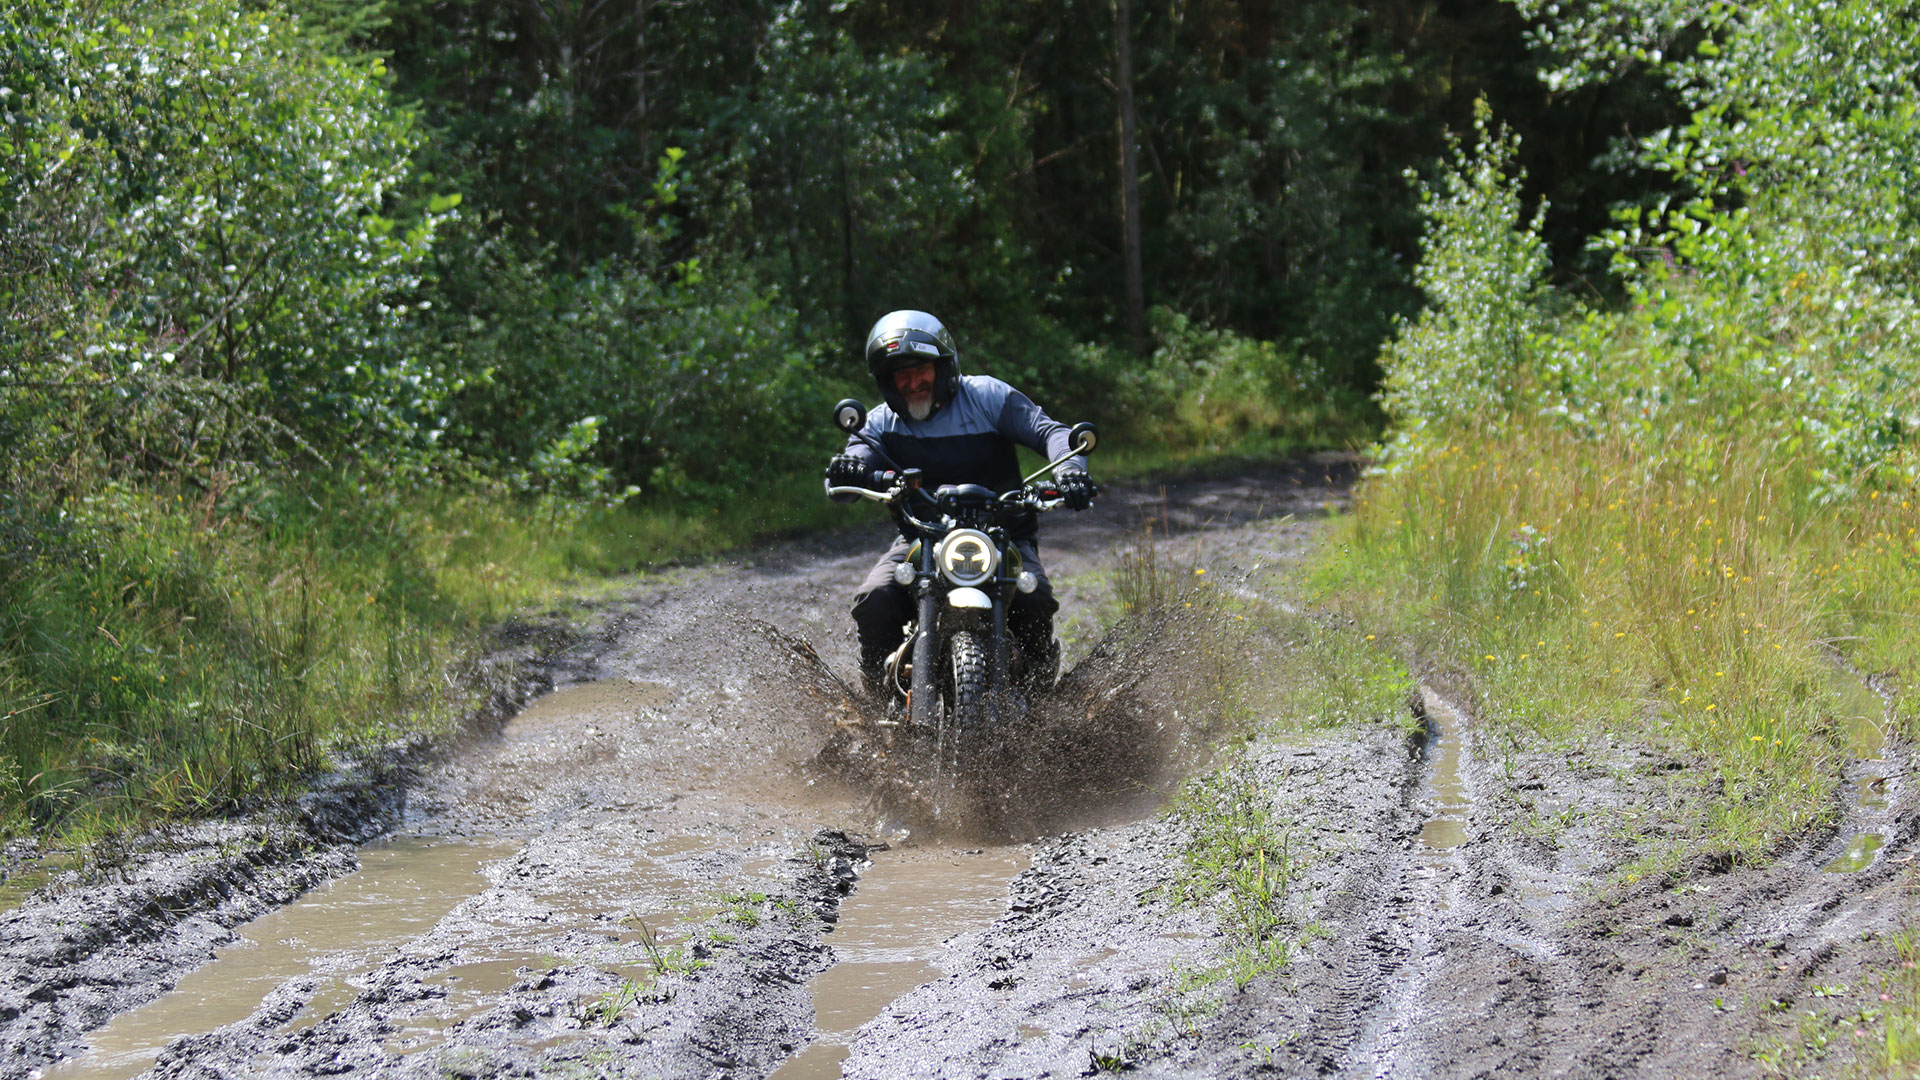 Triumph Scrambler 1200 XC completing the intermediate trail ride